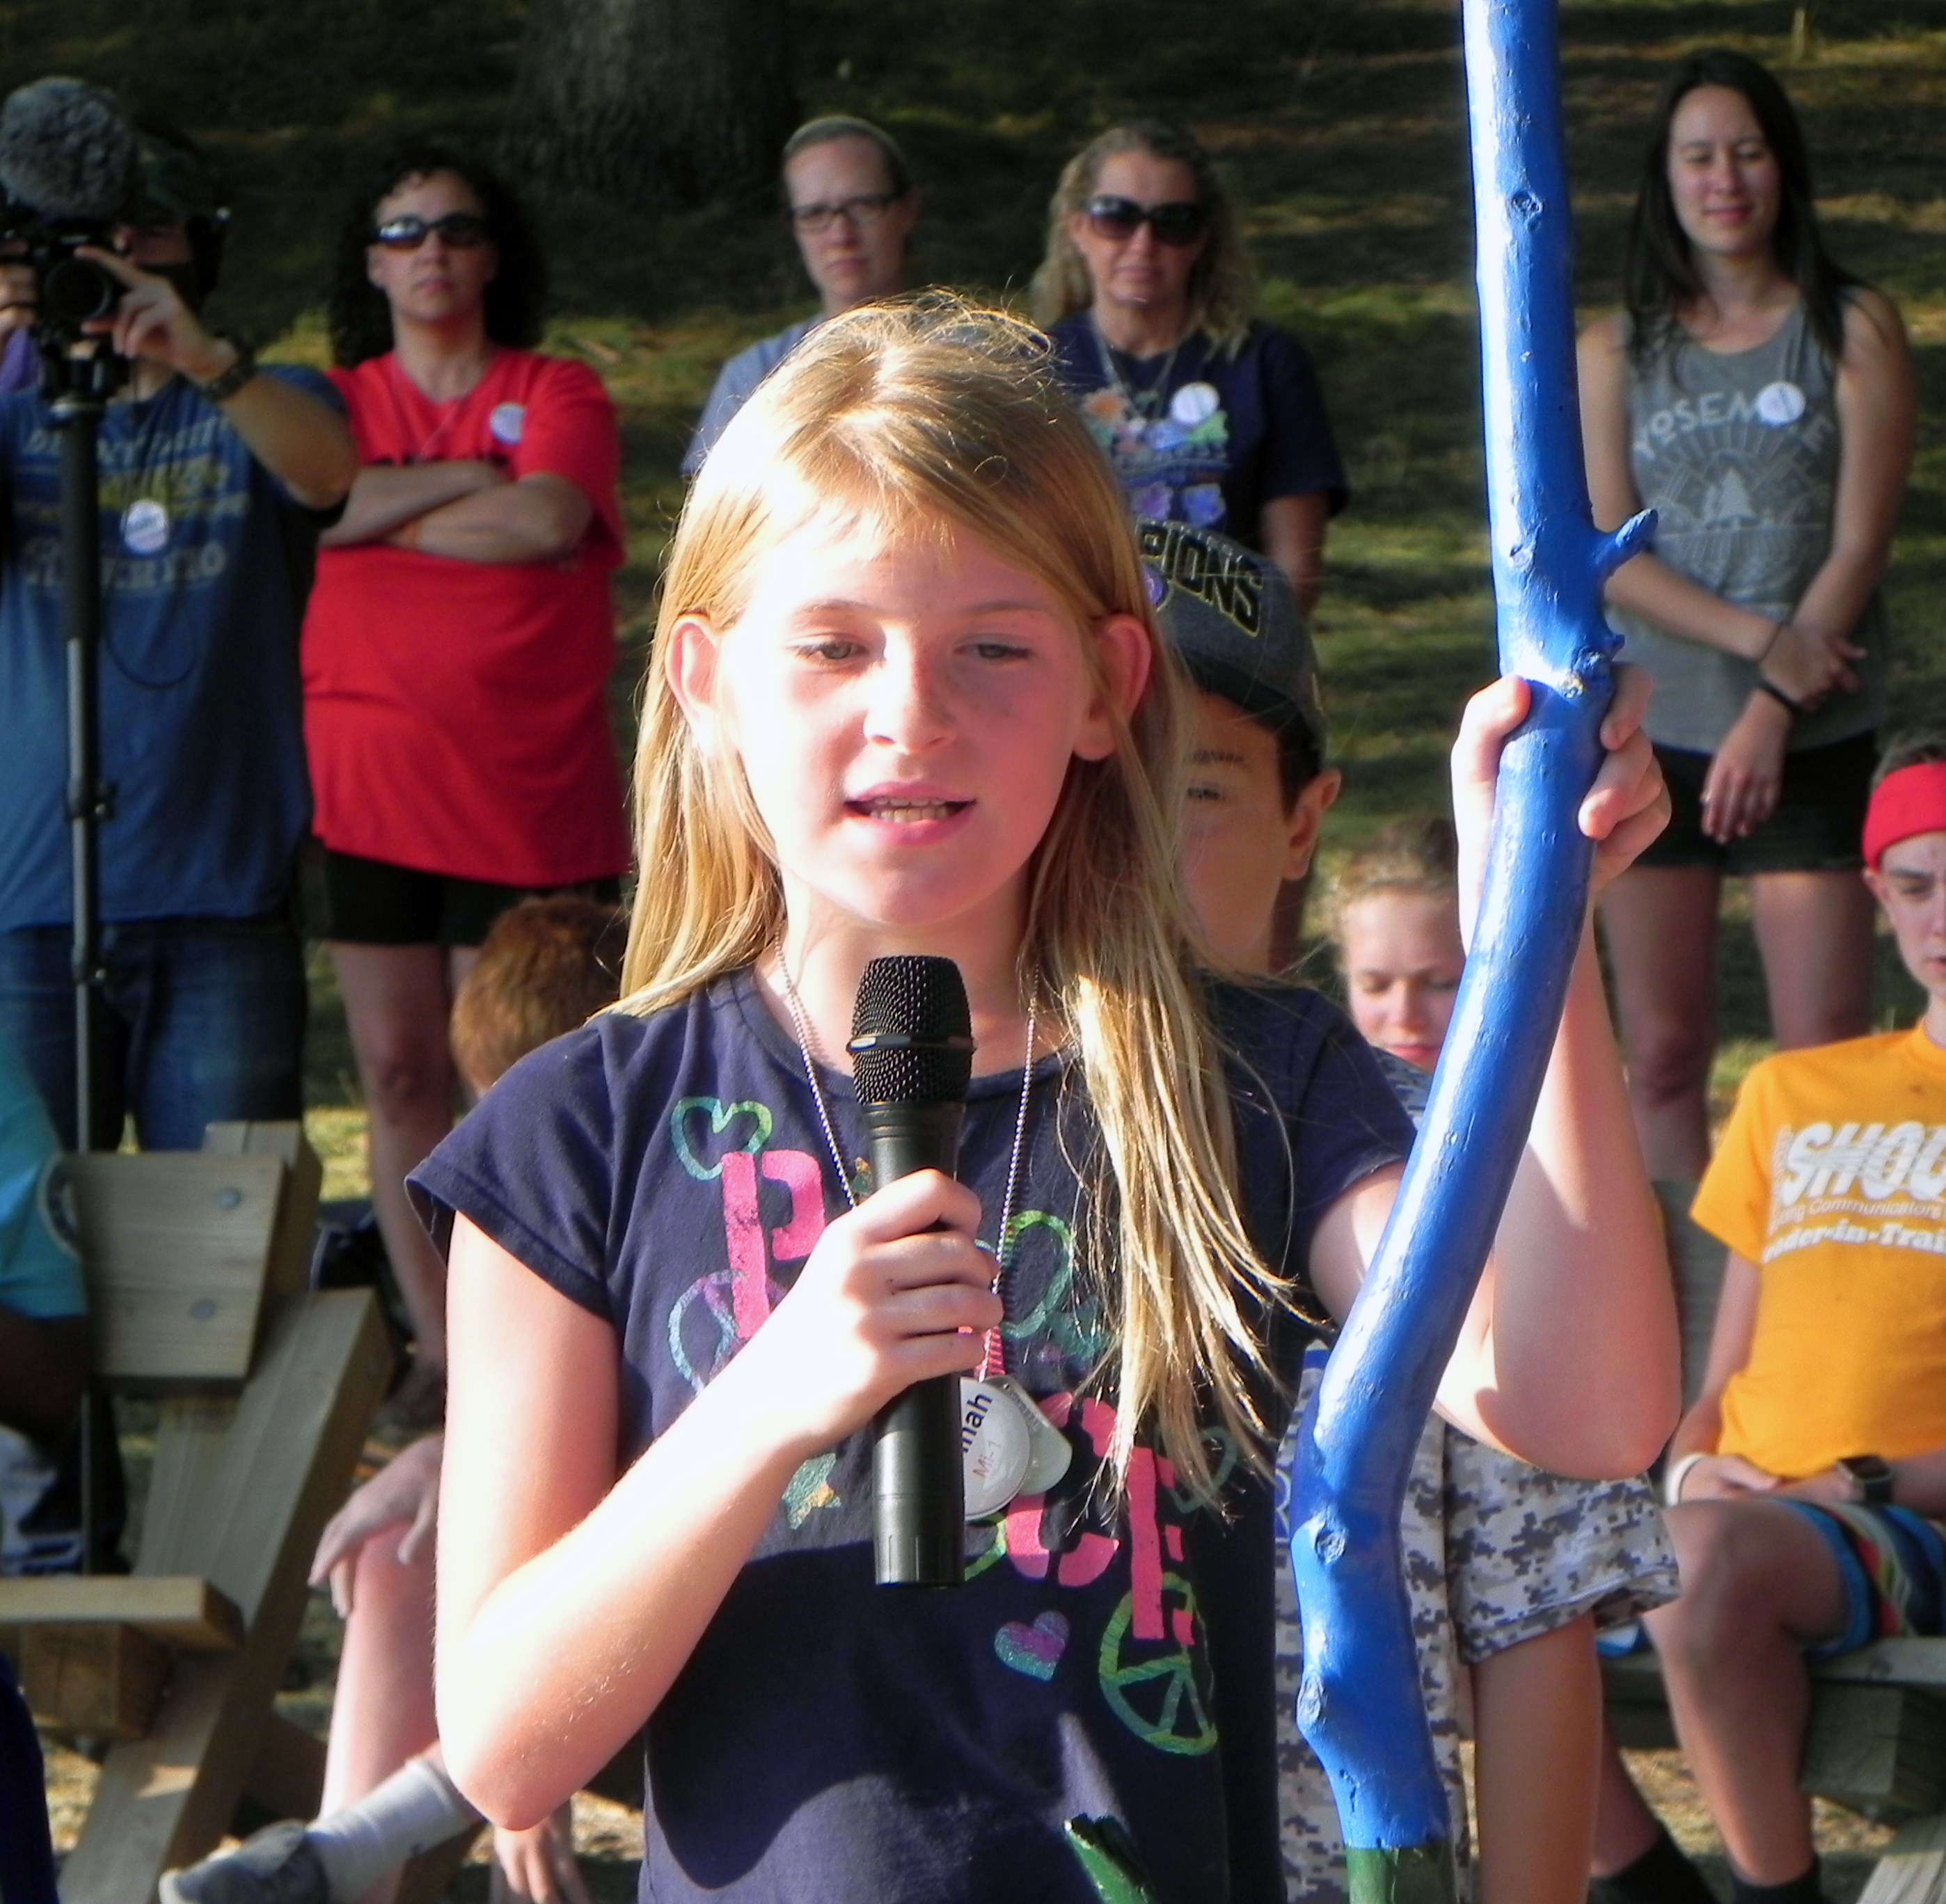 Female camper talking into microphone